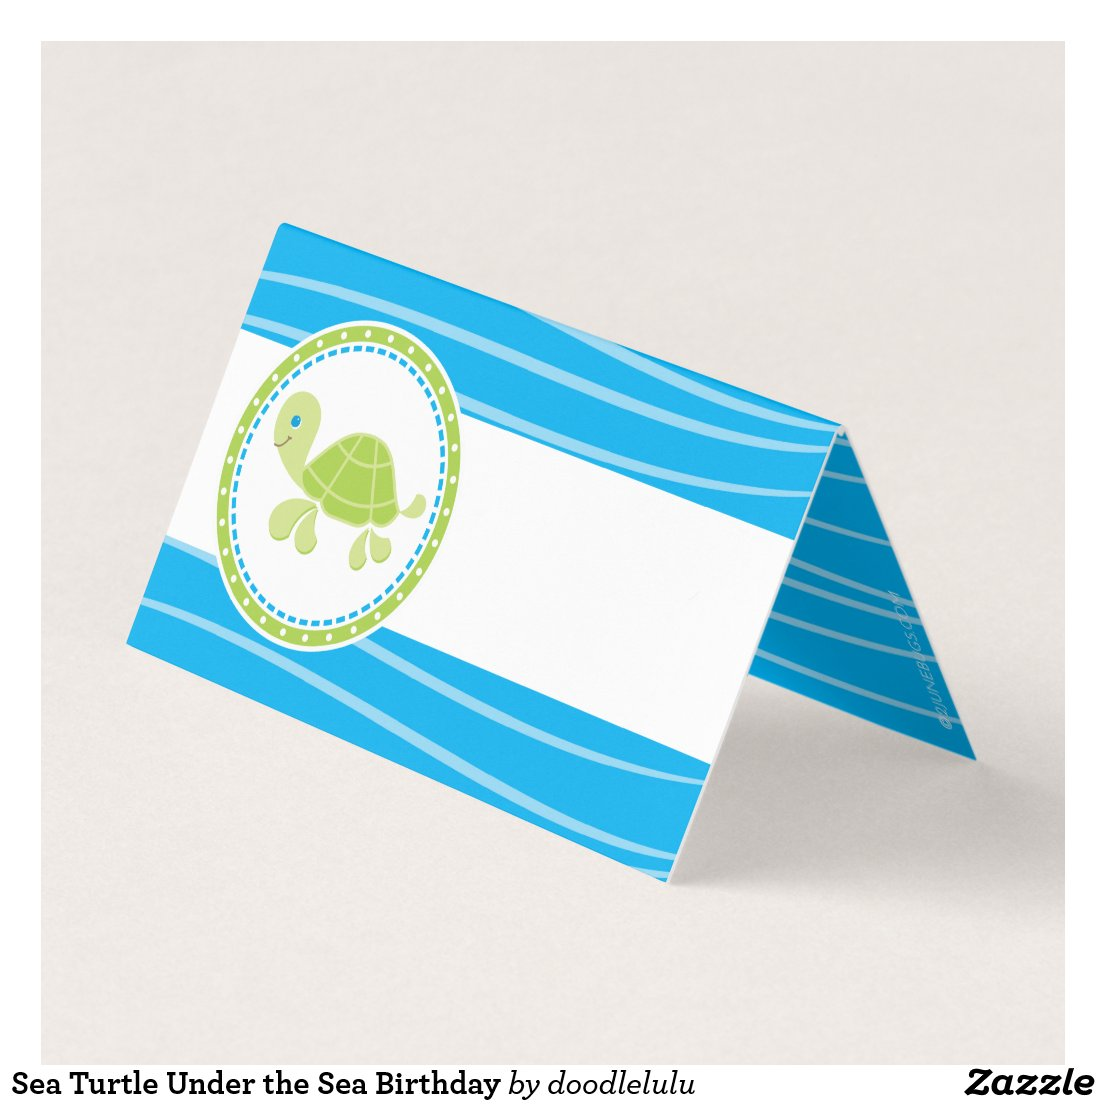 Sea Turtle Under the Sea Birthday Place Card